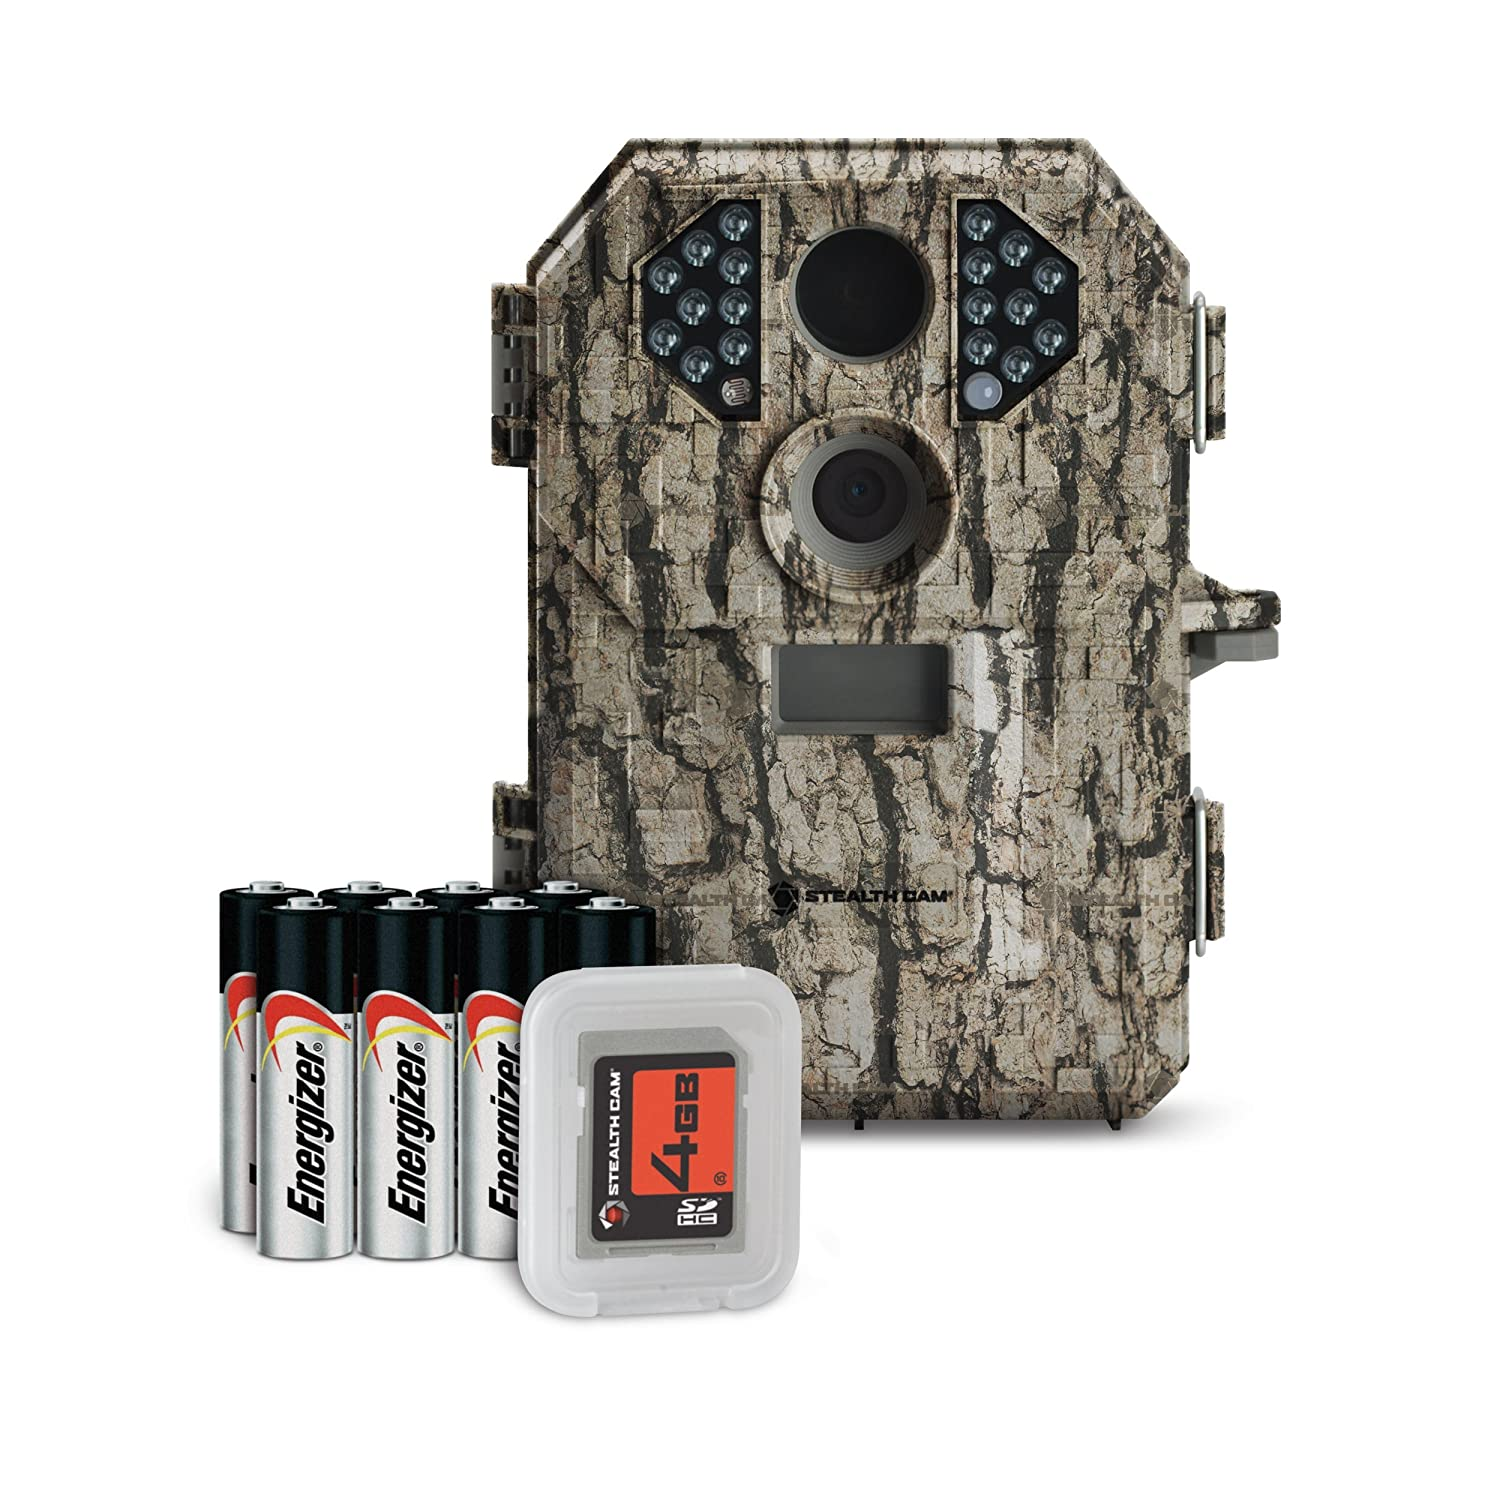 Stealth Cam P18 7 Megapixel Compact Scouting Camera with Batteries and SD Card, Camouflage [並行輸入品] B01LZ9LCVA